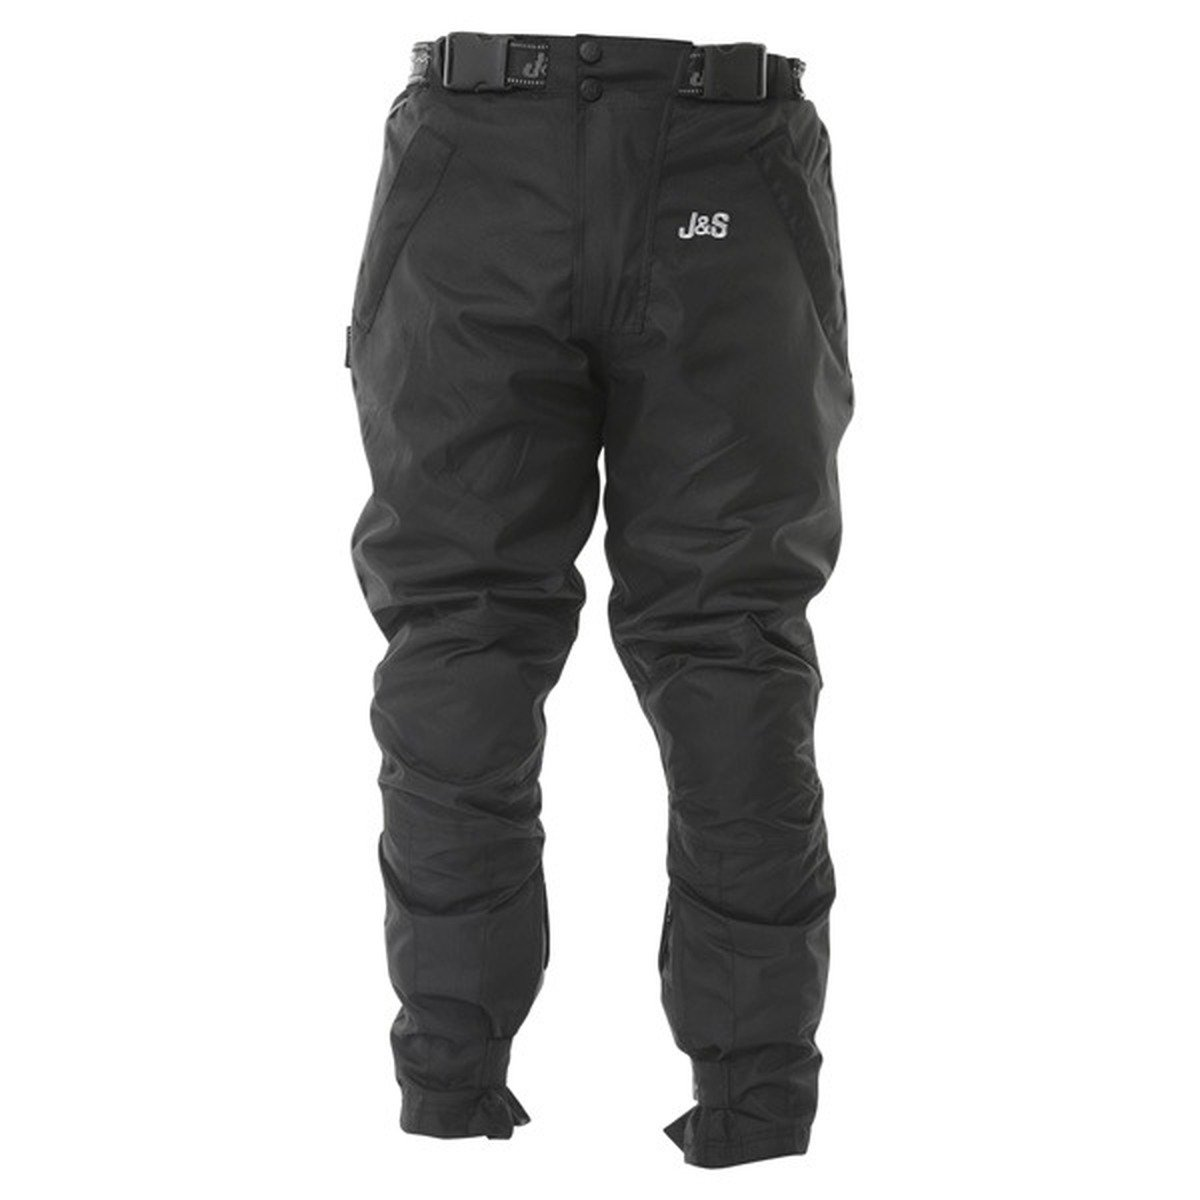 J&S Challenger trousers